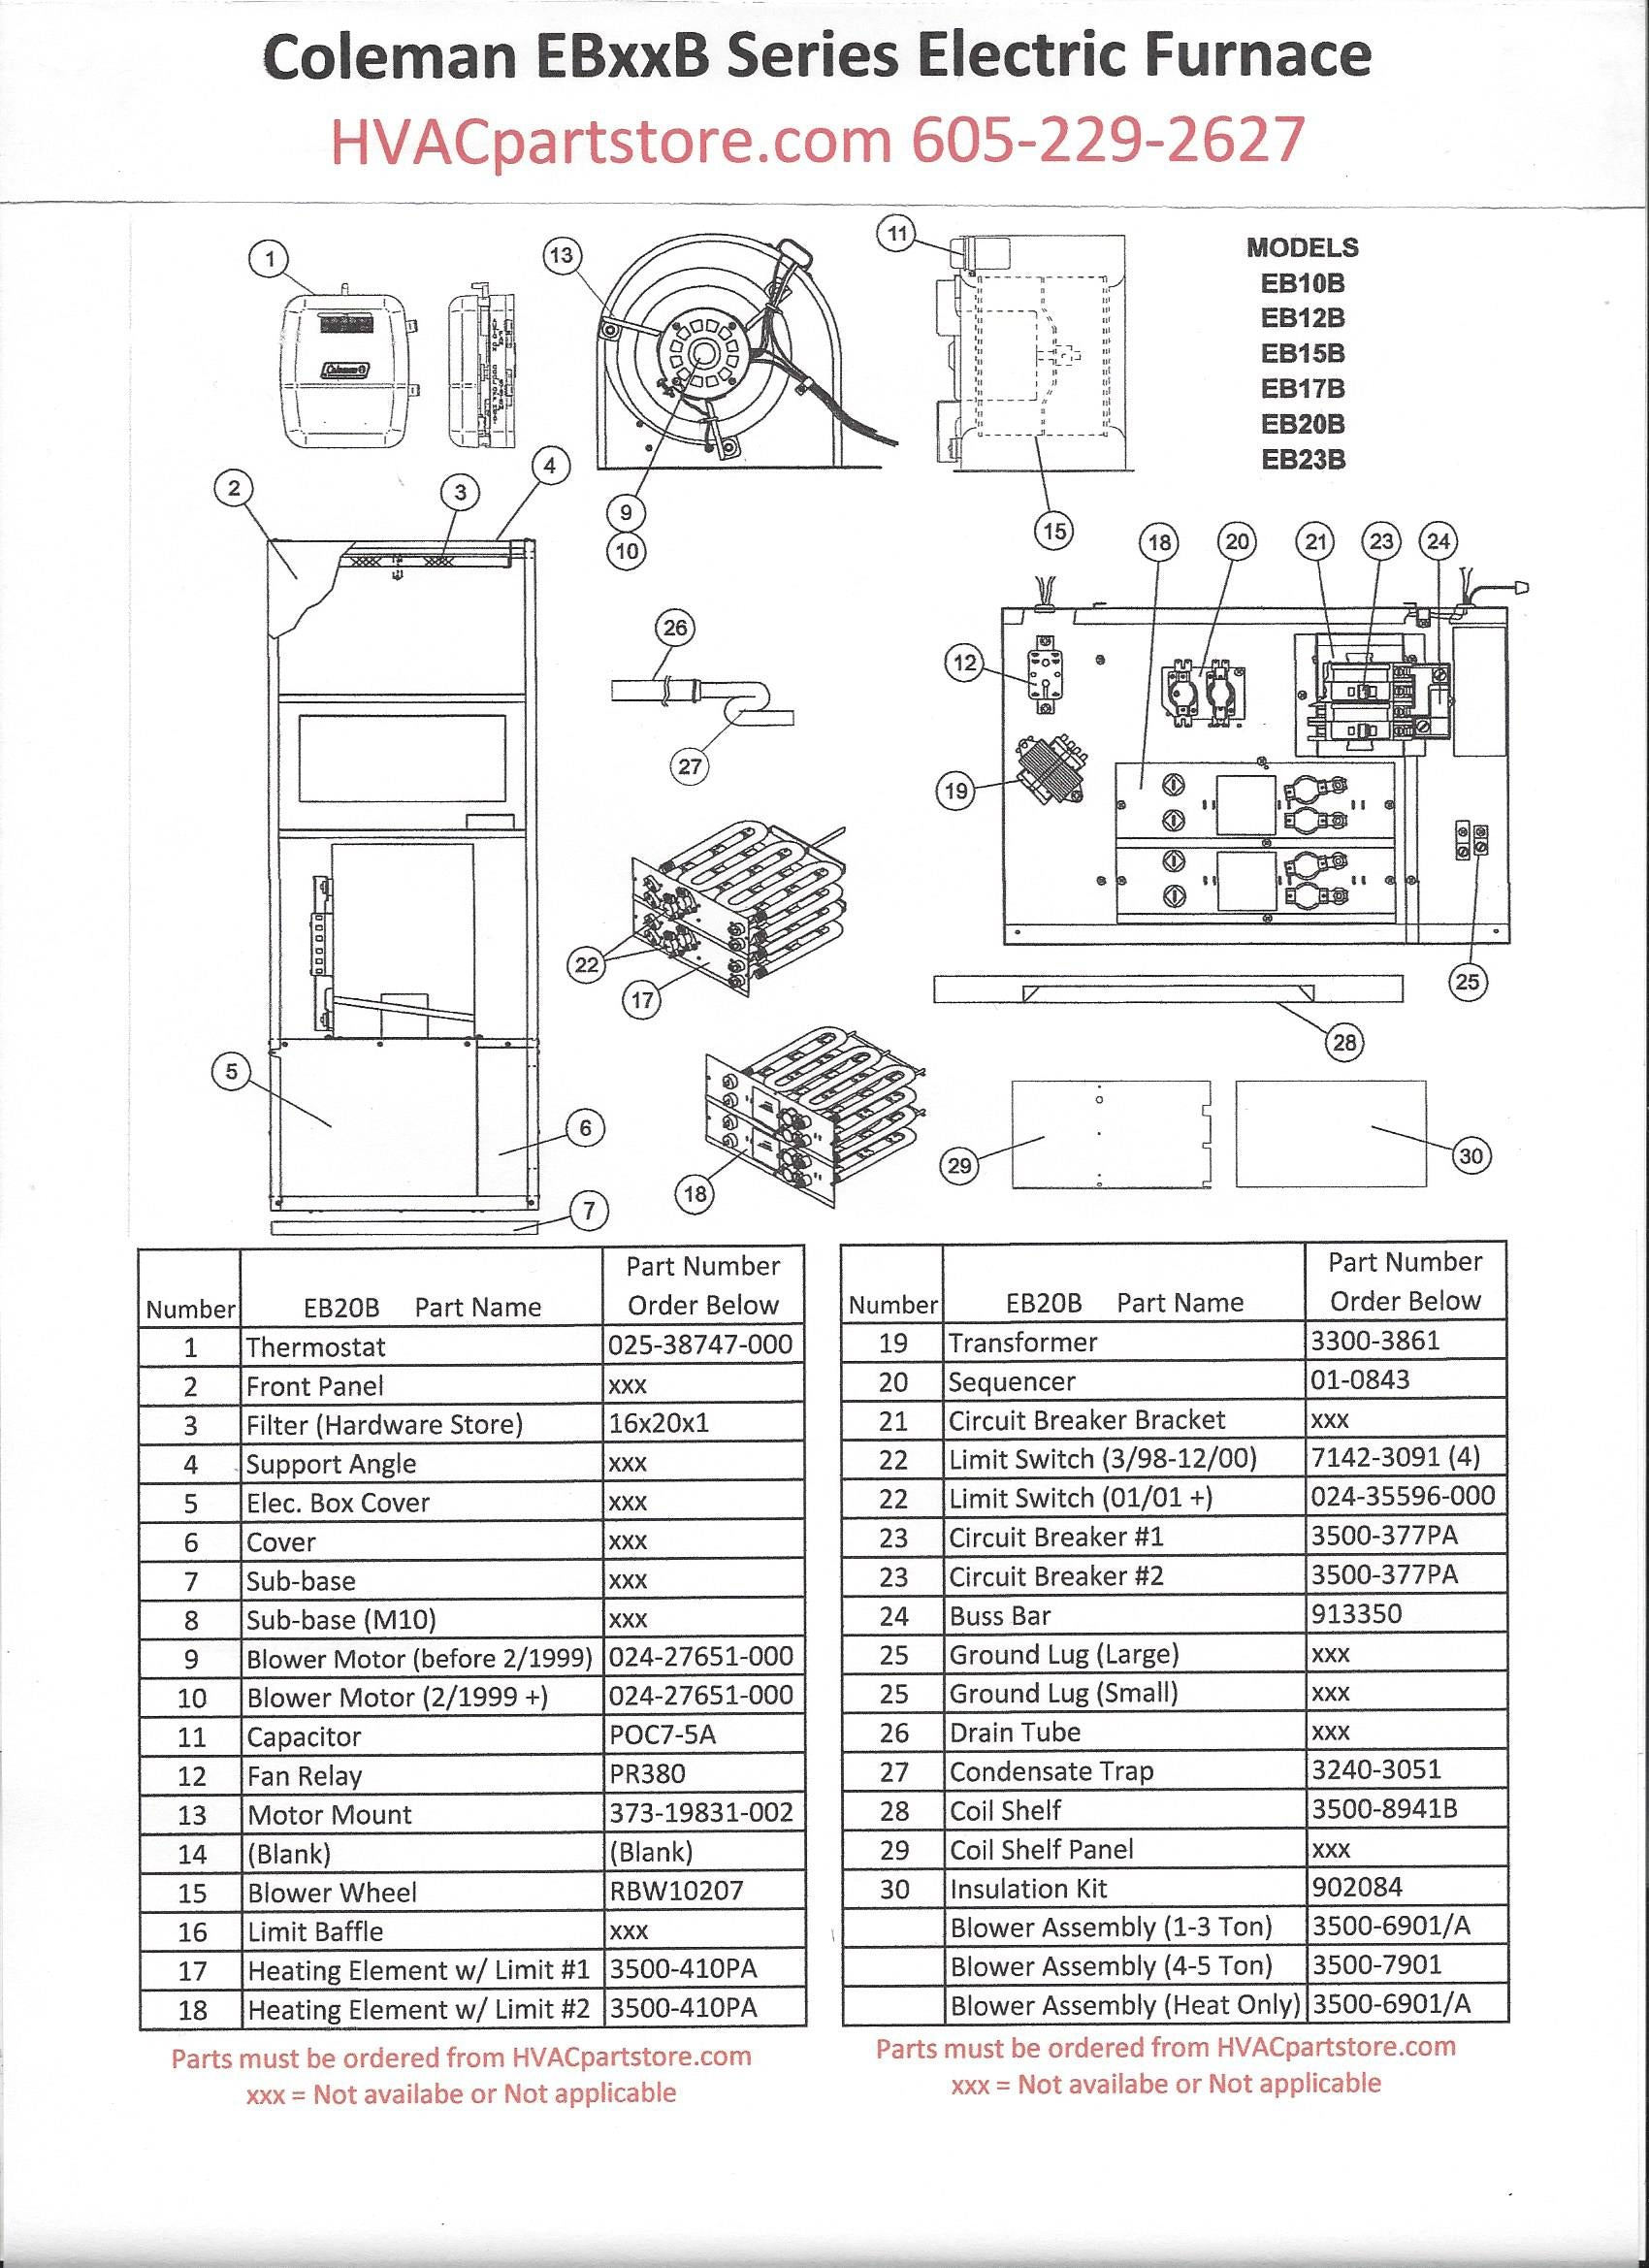 Atwood Wiring Diagram also Rheem Control Board Wiring Diagram moreover Collectionsdwn Sewing Needle Clip Art moreover Electric Fireplace Wiring Diagram additionally Buck Stove Parts. on fireplace blower wiring diagram